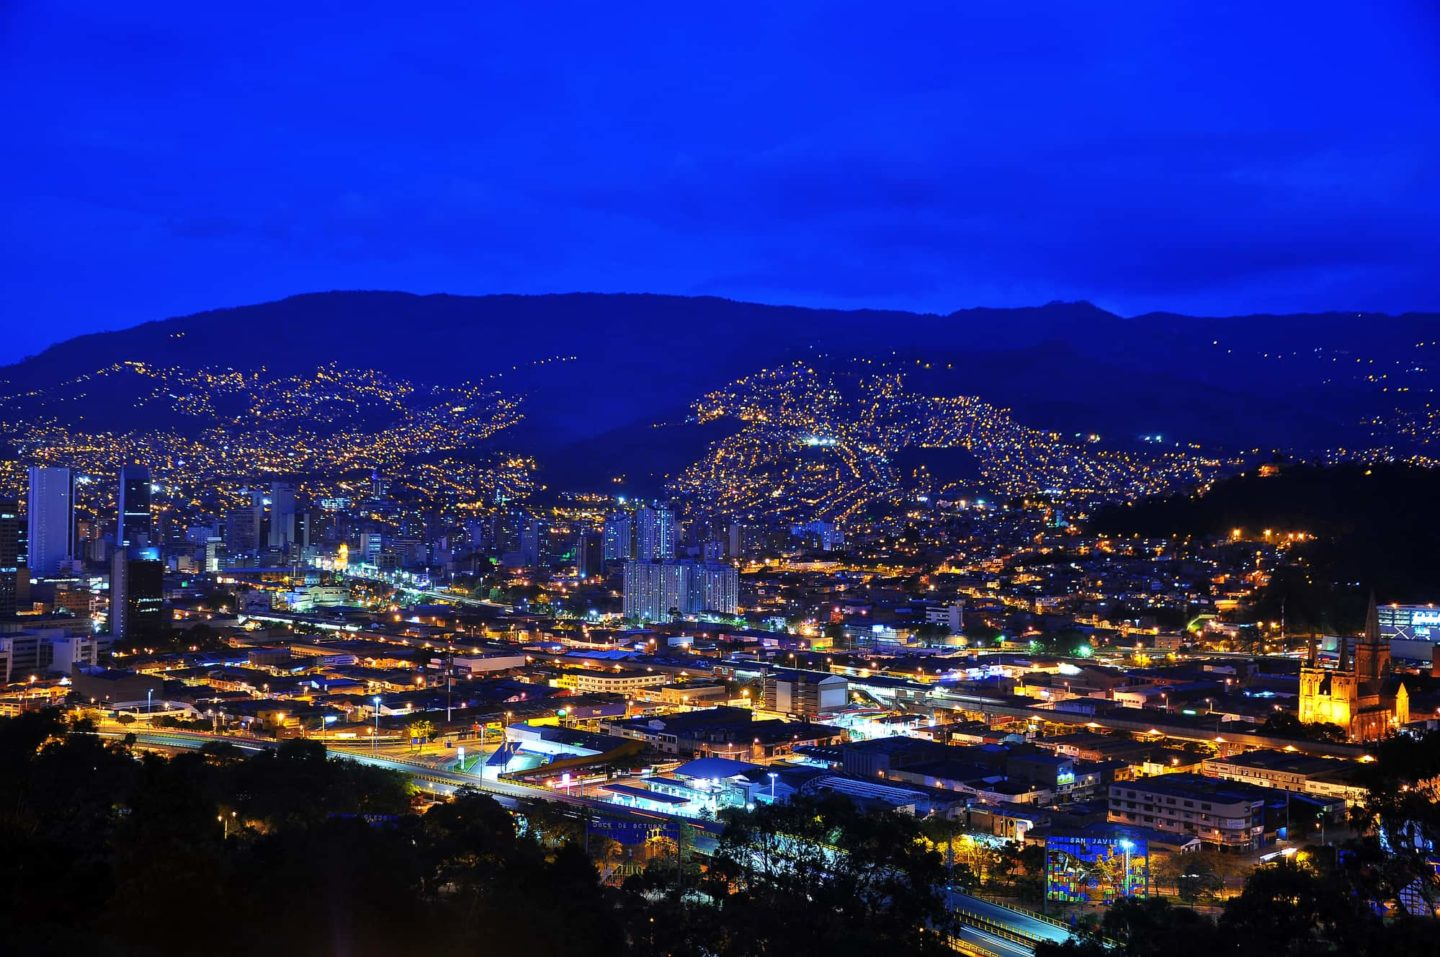 Night time in Medellin. Is Medellin safe for dating